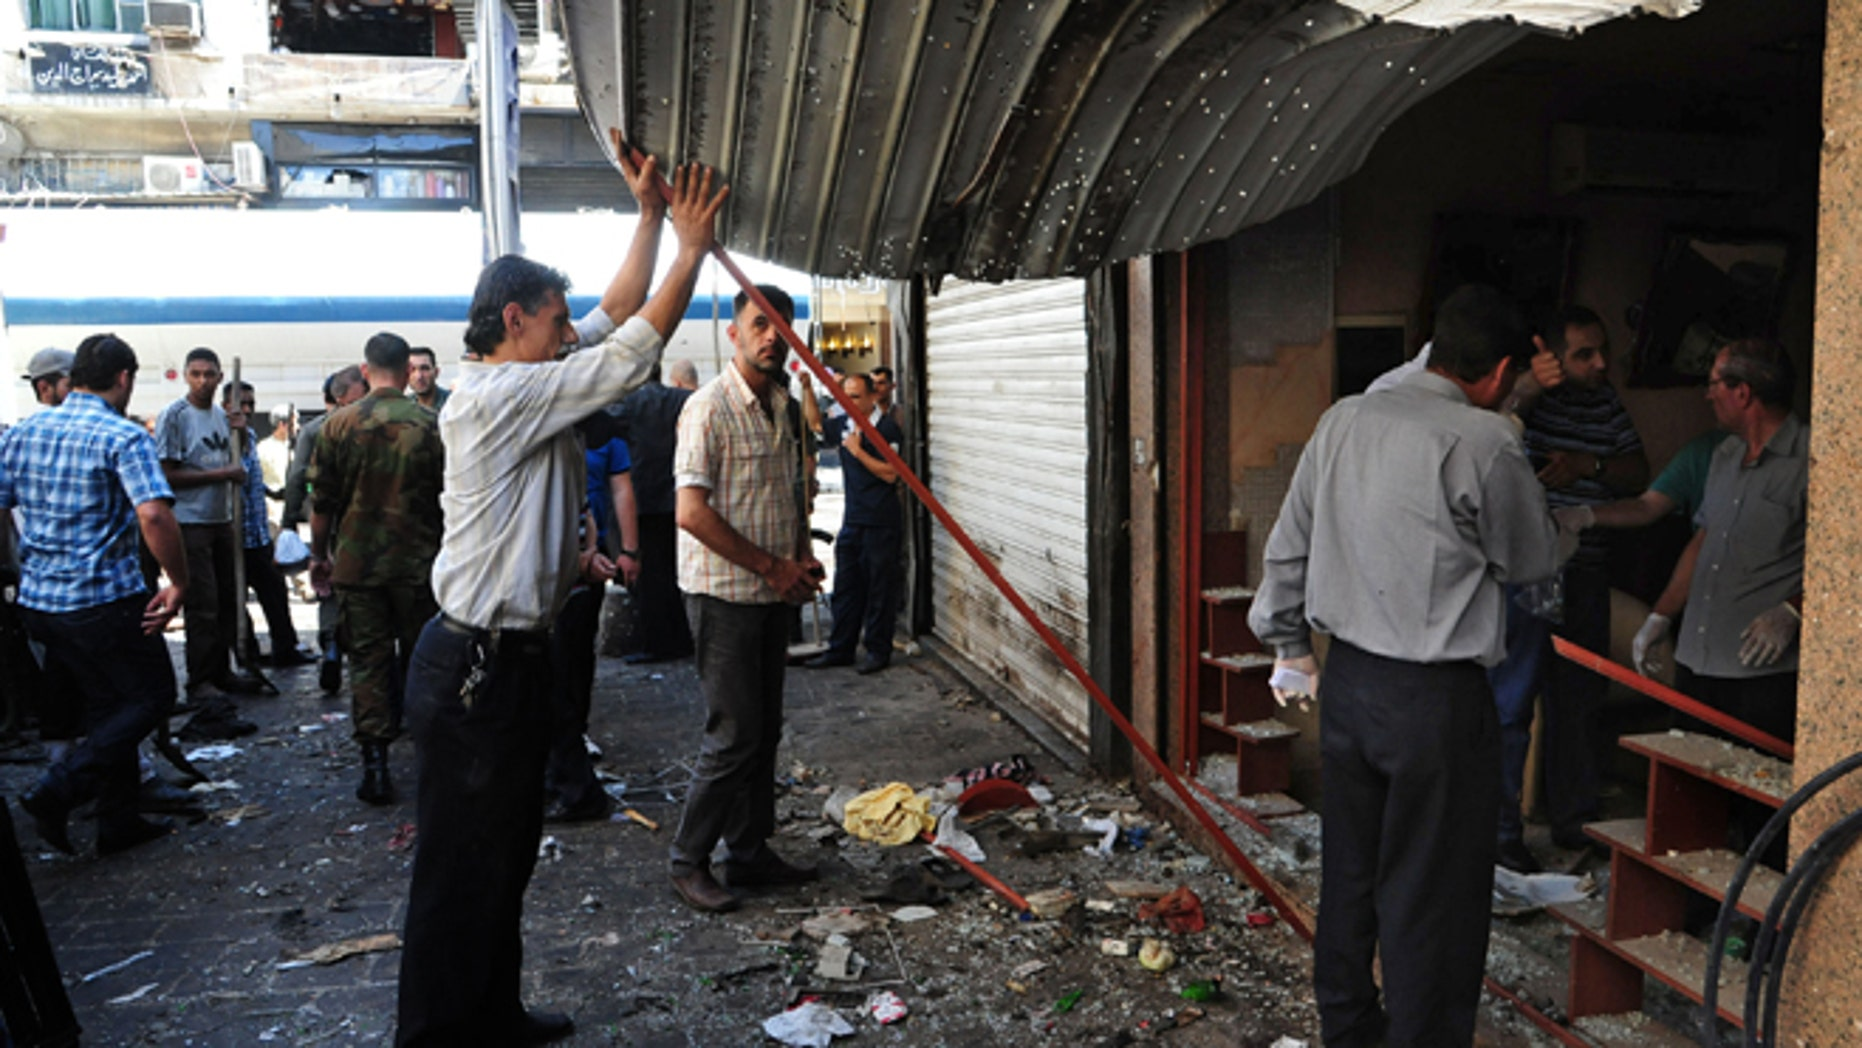 June 11, 2013: In this photo released by the Syrian official news agency SANA, Syrians inspect a damaged shop at a scene of two explosions in the central district of Marjeh, Damascus, Syria. Two explosions hit a central Damascus square Tuesday, killing and wounding dozens of people, activists and the state media reported. State TV said the blasts were caused by suicide bombers, while activists said they were bombs planted there in advance.